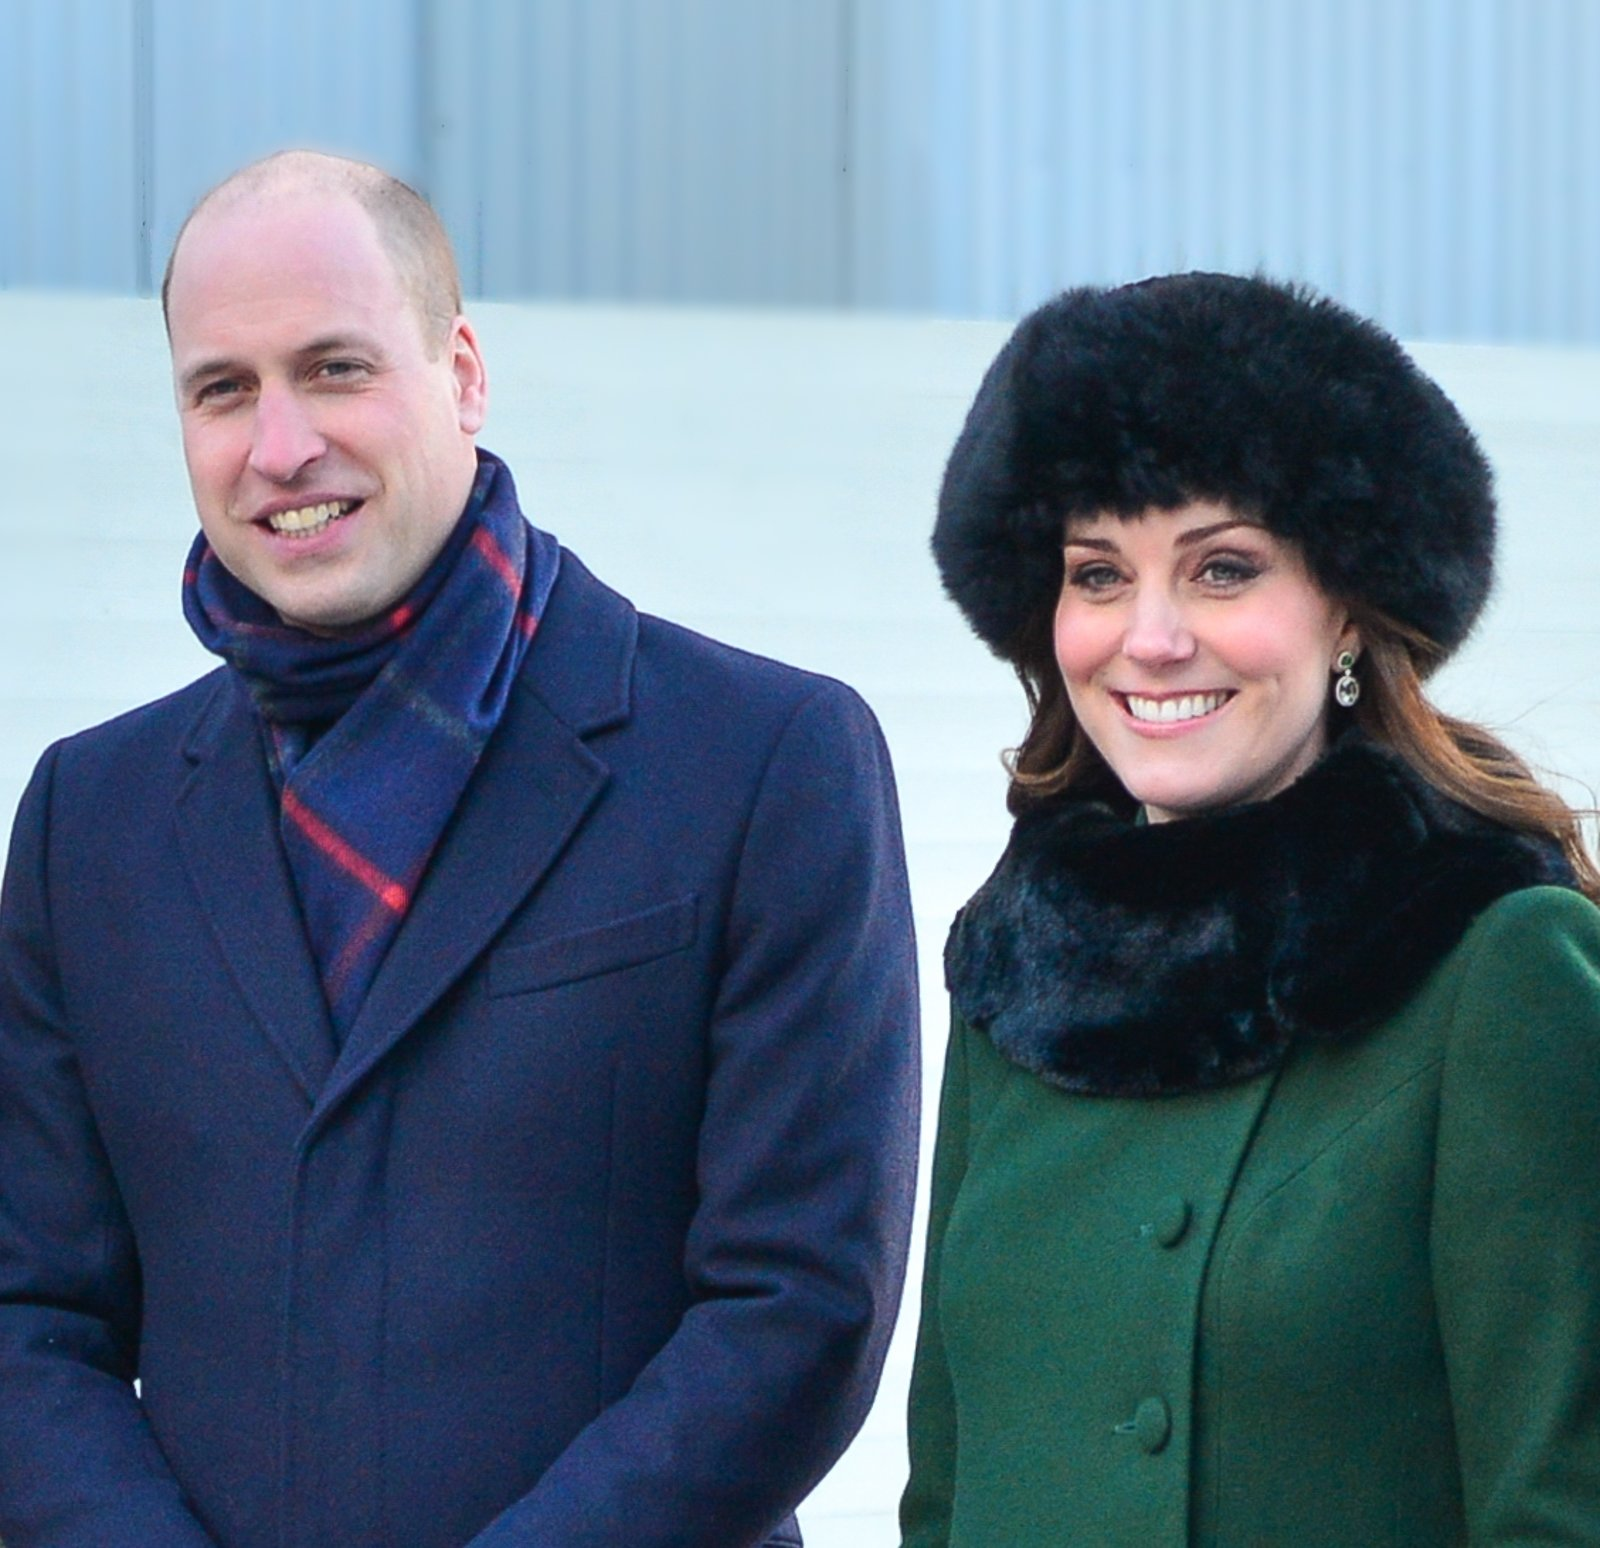 Prince William, Duke of Cambridge and Catherine, Duchess of Cambridge on official visit to Stockholm in Sweden in January 2018 | Source: Frankie Fouganthin / Wikimedia Commons